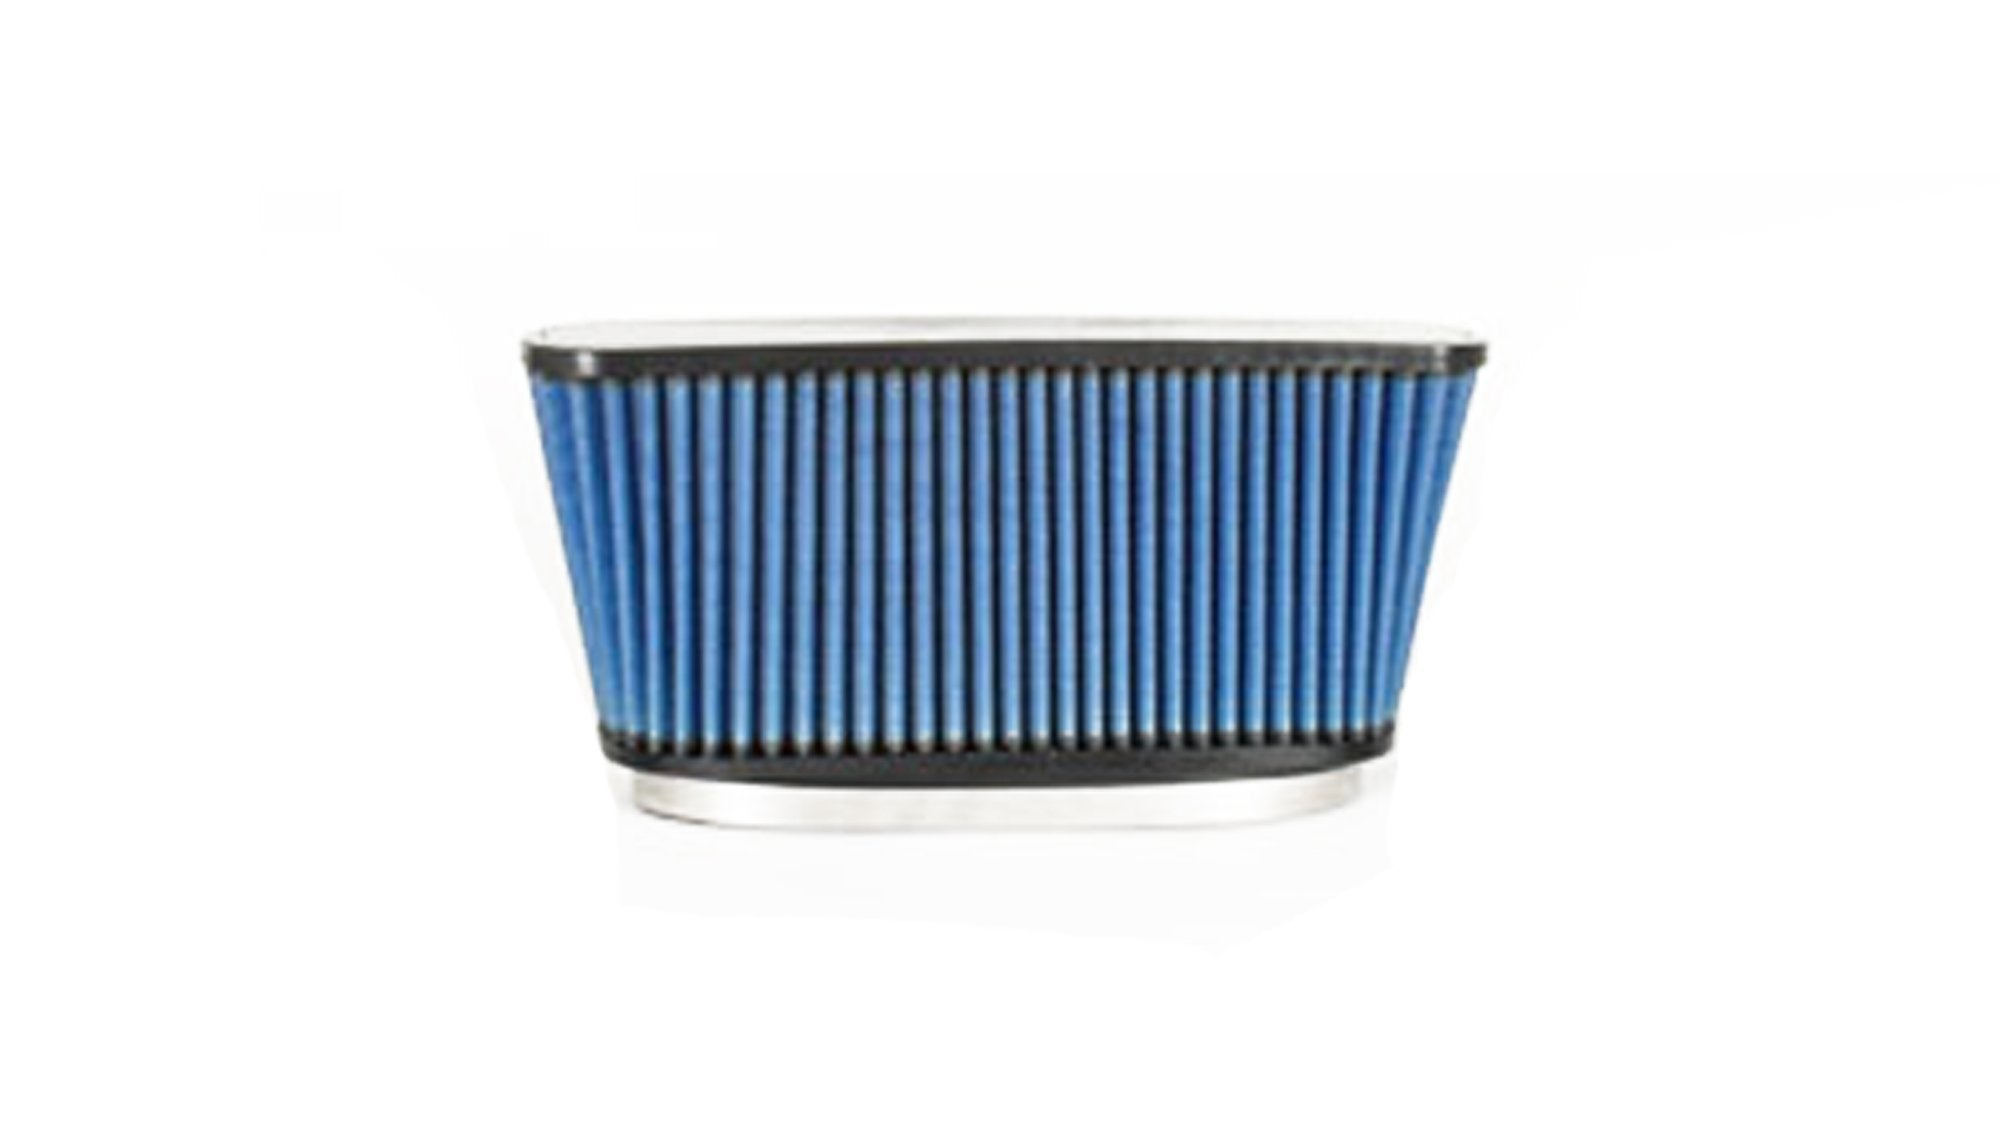 Pro5 Cotton Oiled Air Intake Air Filter - 5106